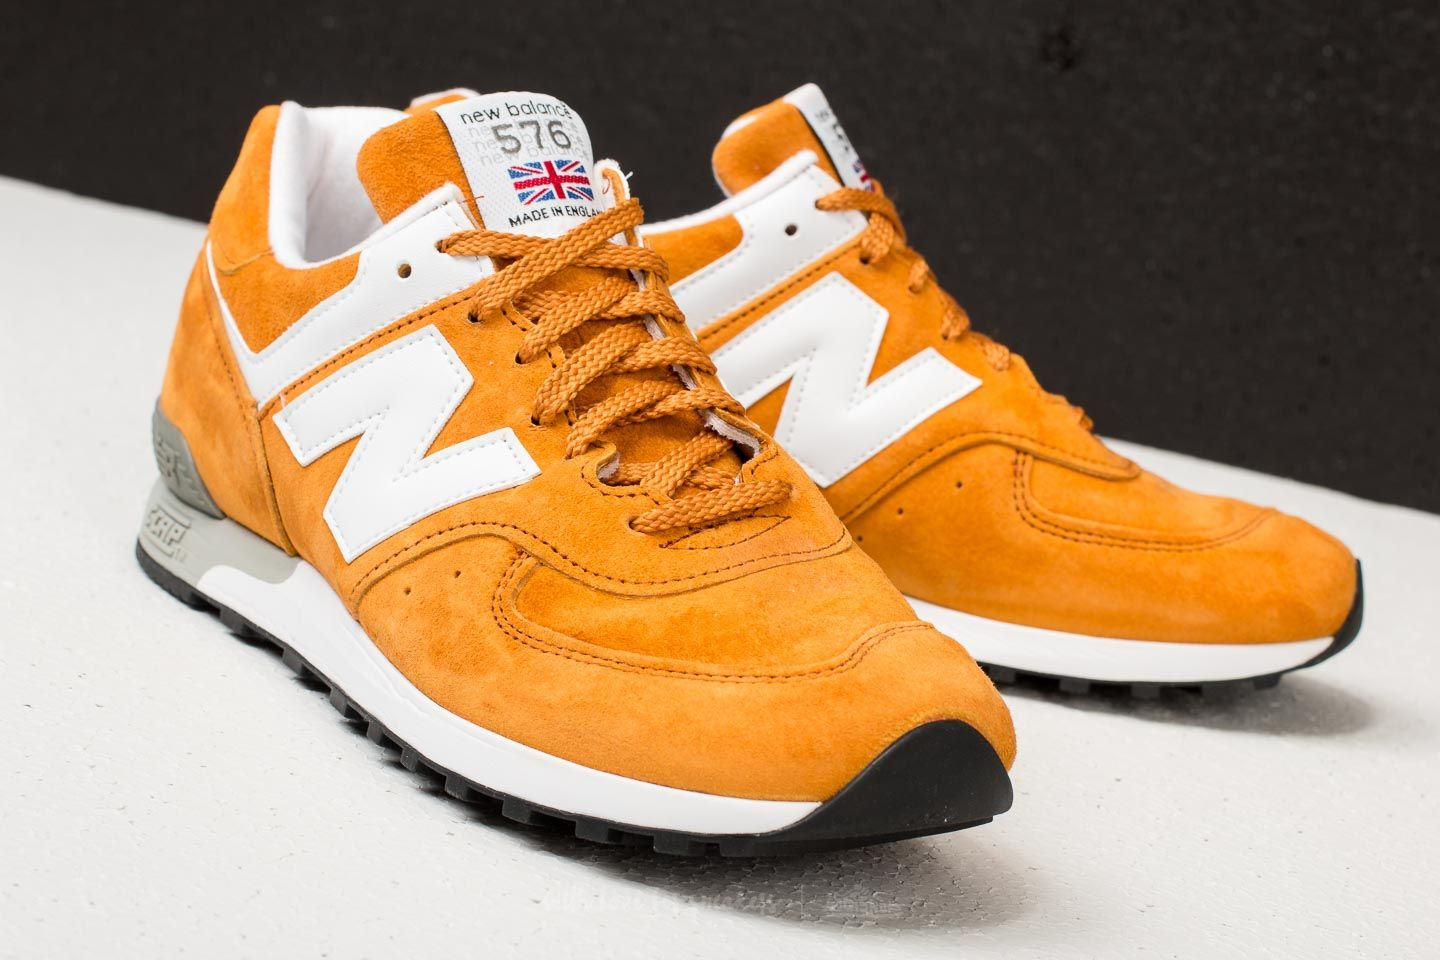 taille 40 9ed28 4f597 New Balance 576 Mustard Yellow/ White | Footshop